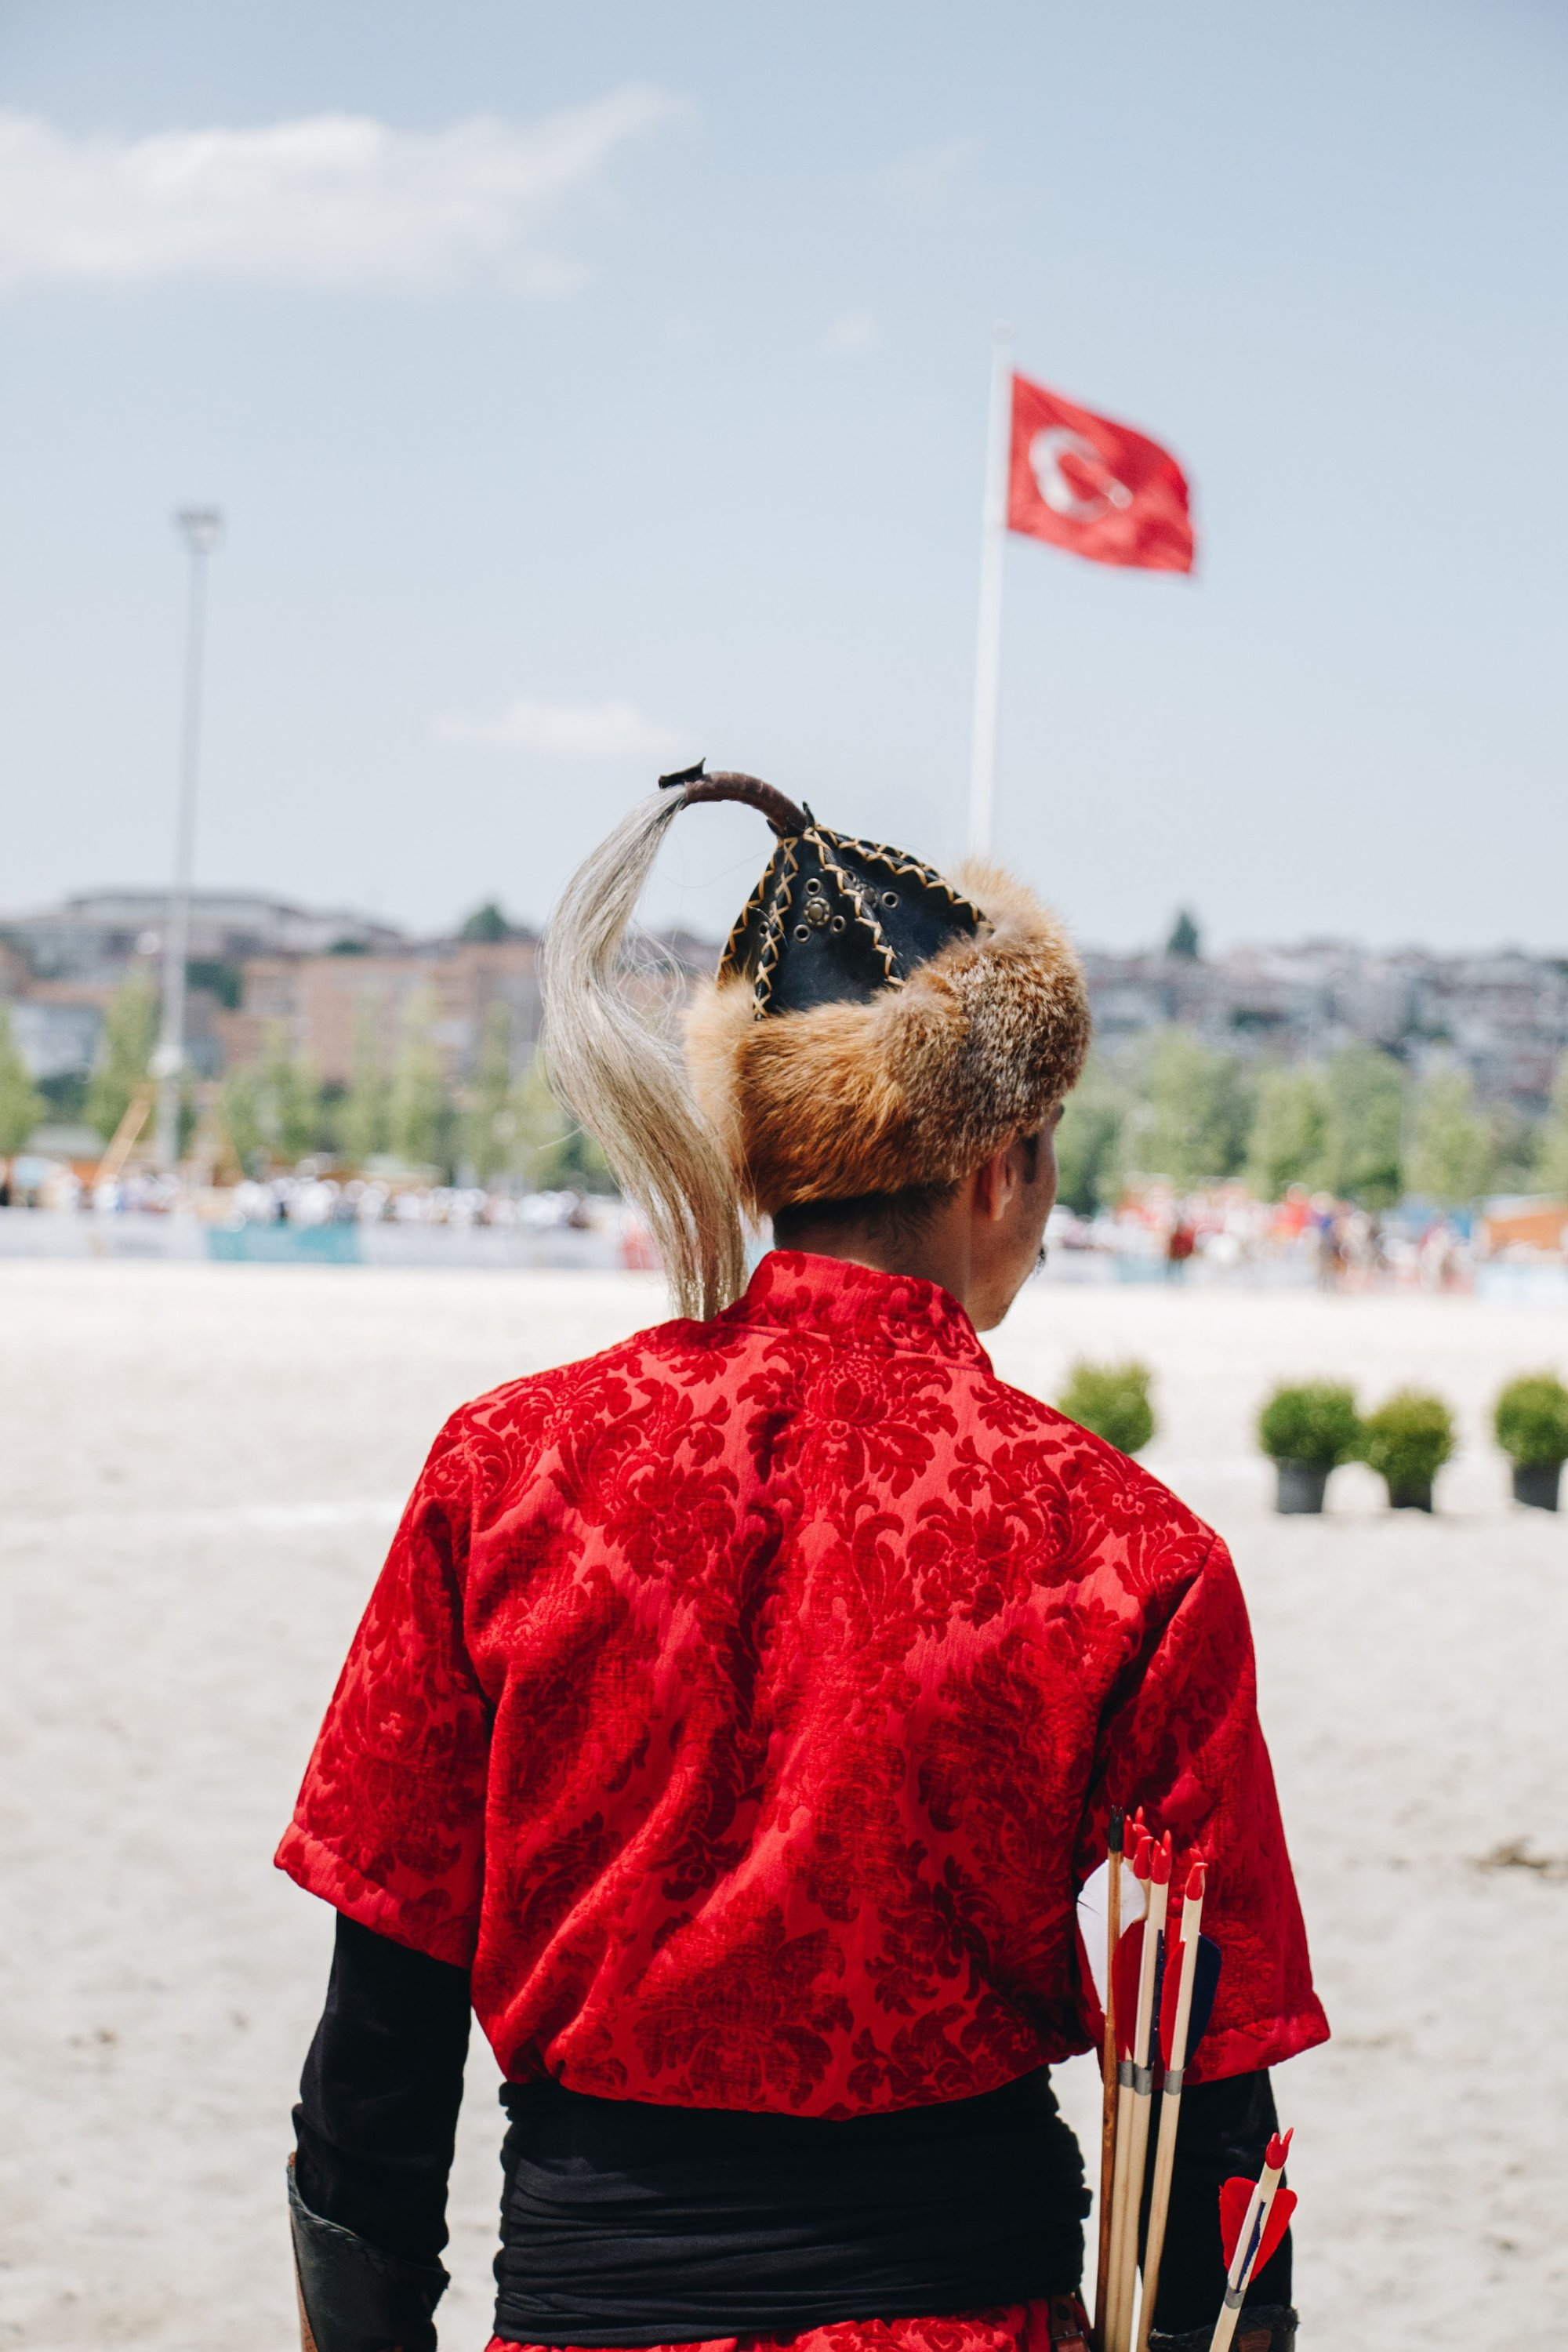 Turks used to wear traditional hats called